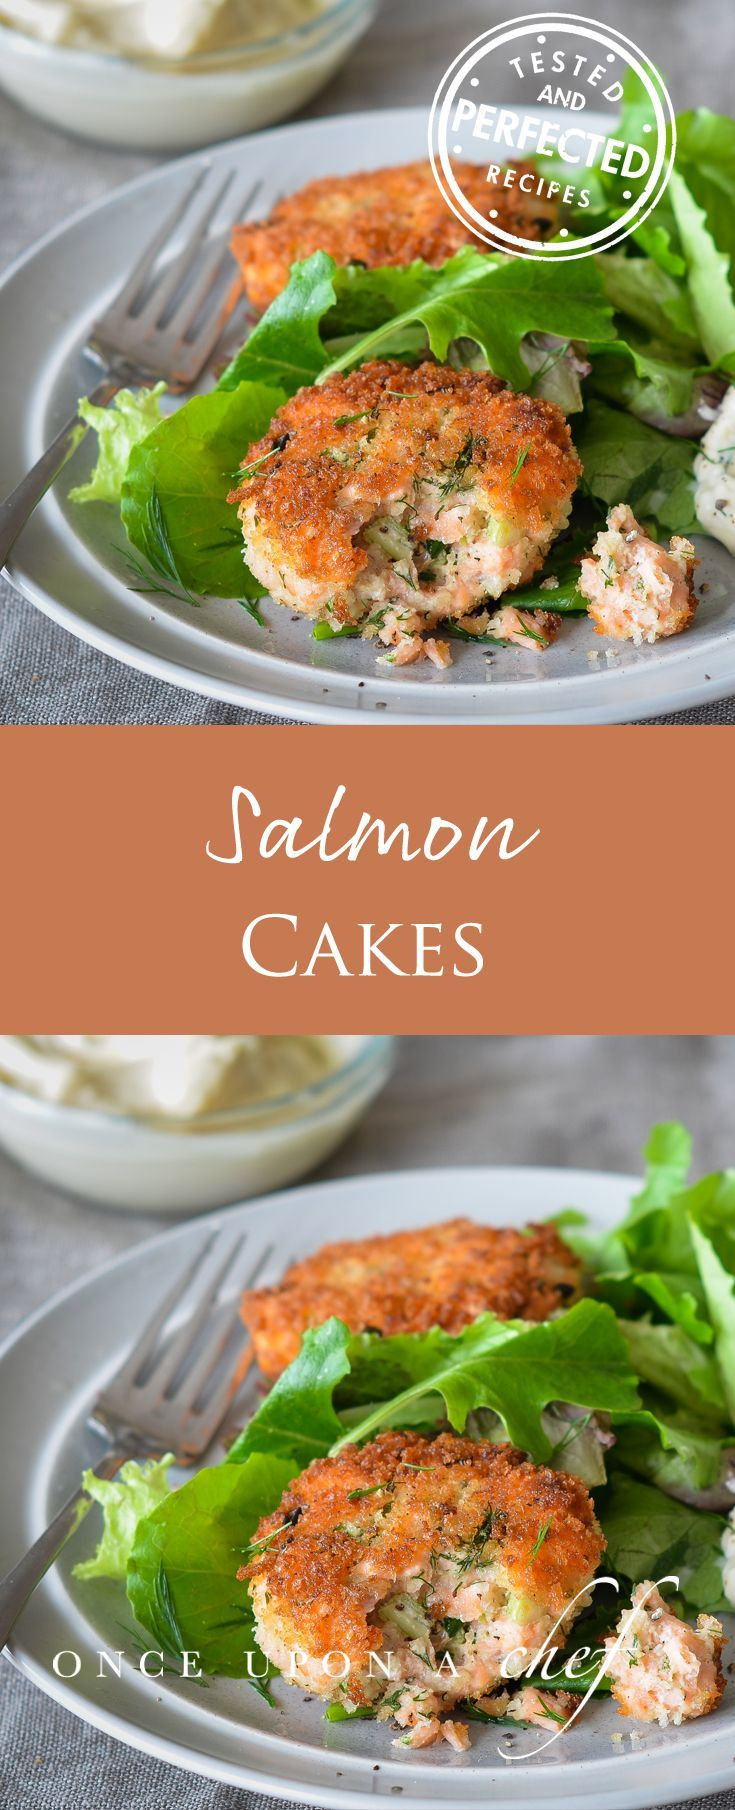 Made from fresh raw salmon and seasoned with Old Bay (naturally…I'm a proud Marylander), they're as elegant as crab cakes but much more affordable to make. Quick enough to throw them together on a busy weeknight or serve them to company. Bonus, you can even make ahead. Eat them atop a green salad with a dollop of tartar sauce, or alongside rice pilaf and a vegetable.